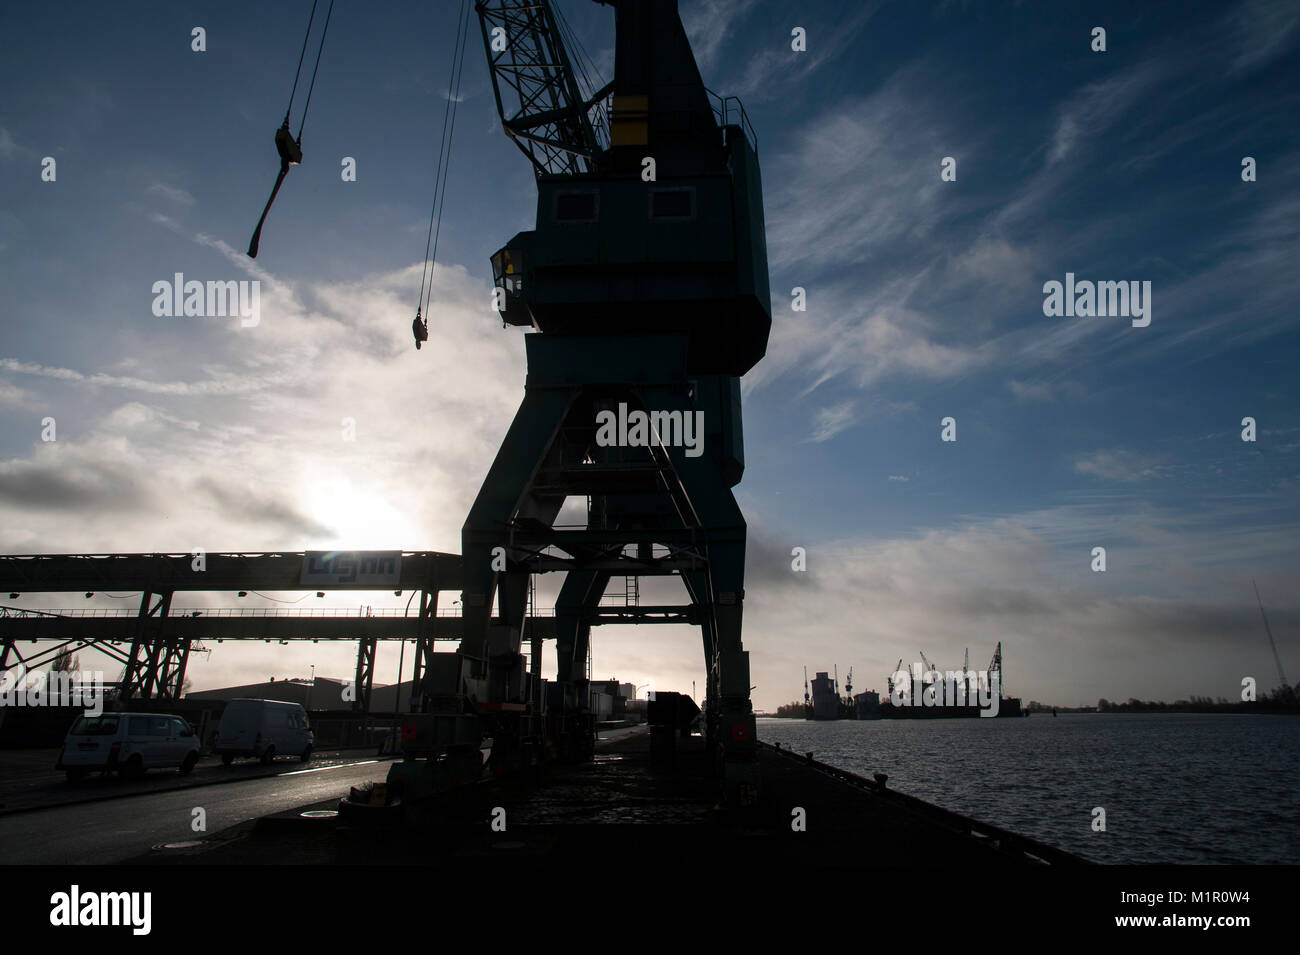 Could Bremerhaven Harbour and the trade their become a casualty of the Brexit negotiations. Bremerhaven, Germany. - Stock Image